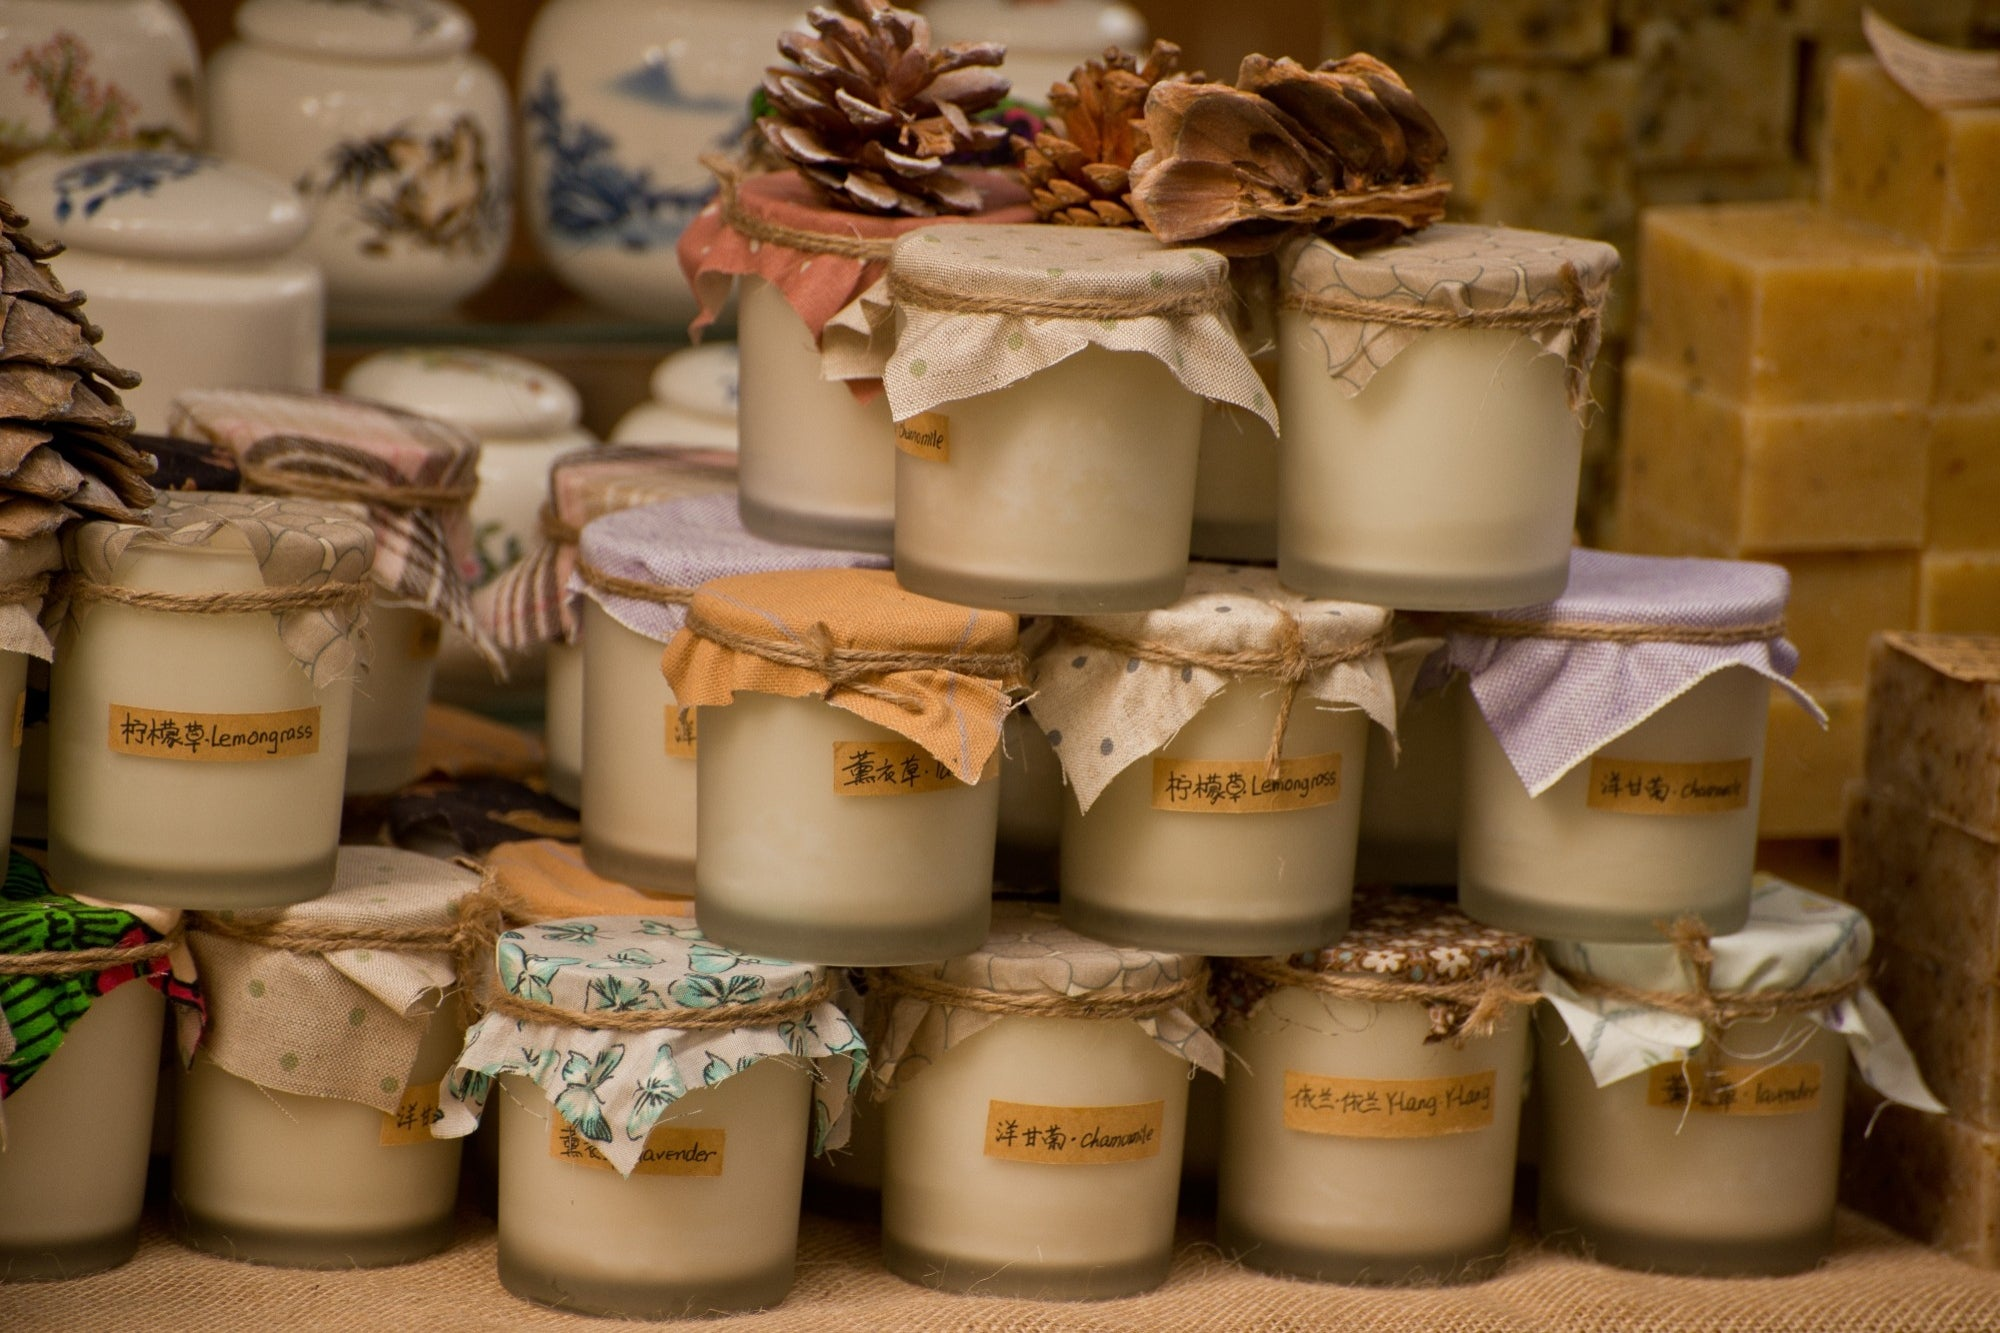 Business idea: Open a boutique service of scented candles